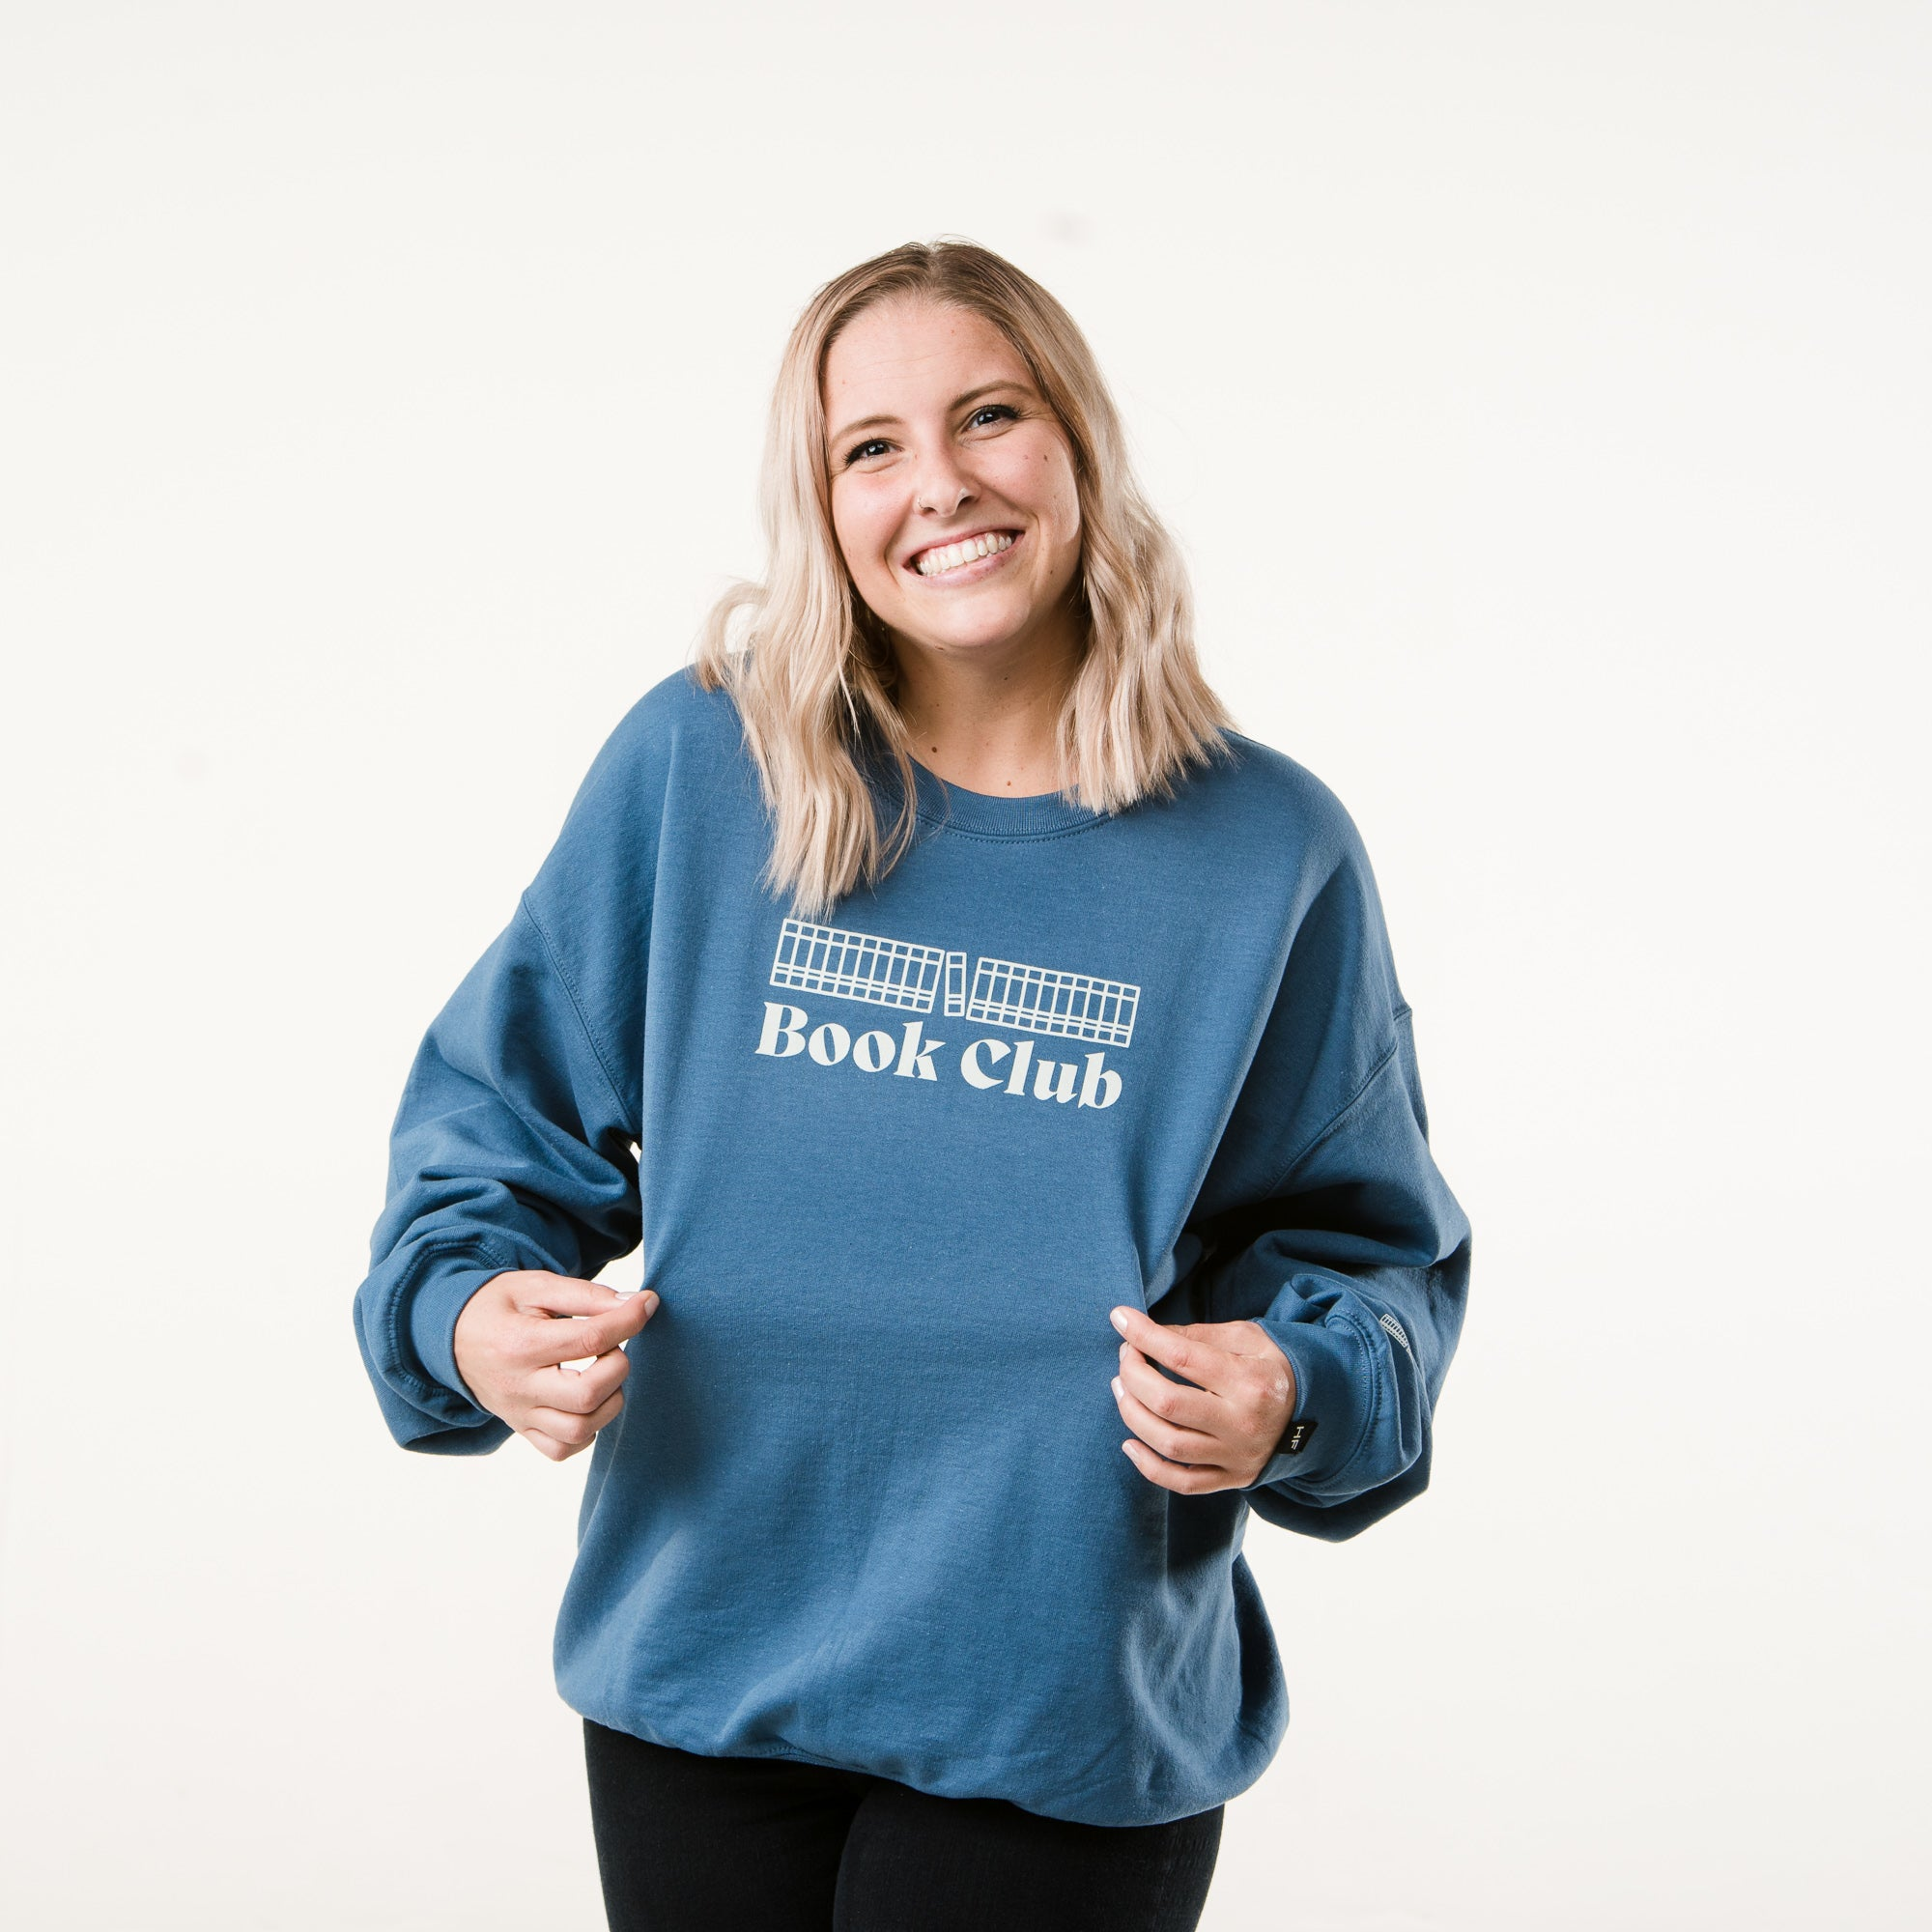 'Book Club' Sweatshirt